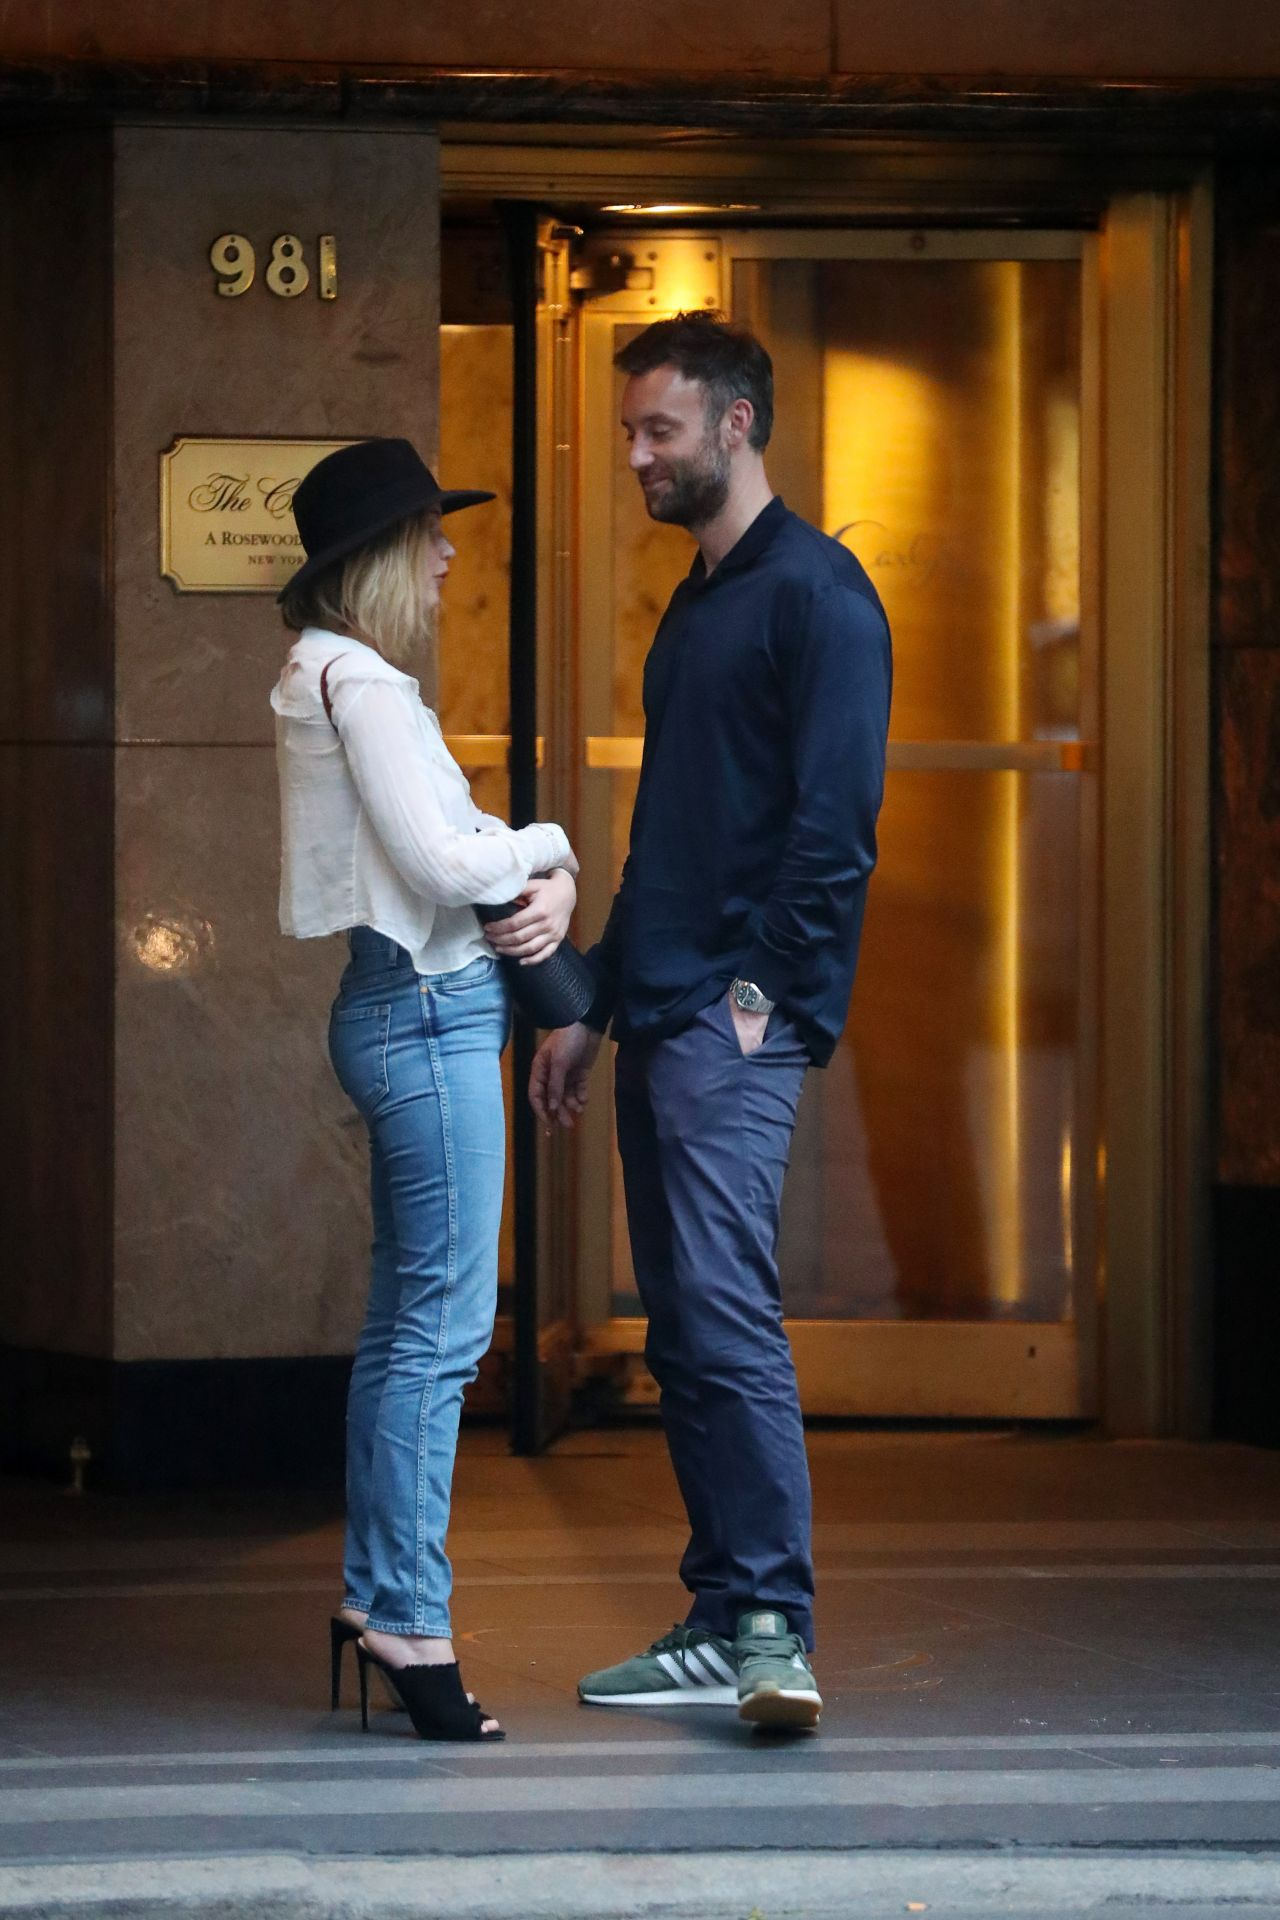 Jennifer Lawrence And Cooke Maroney In New York City 0621